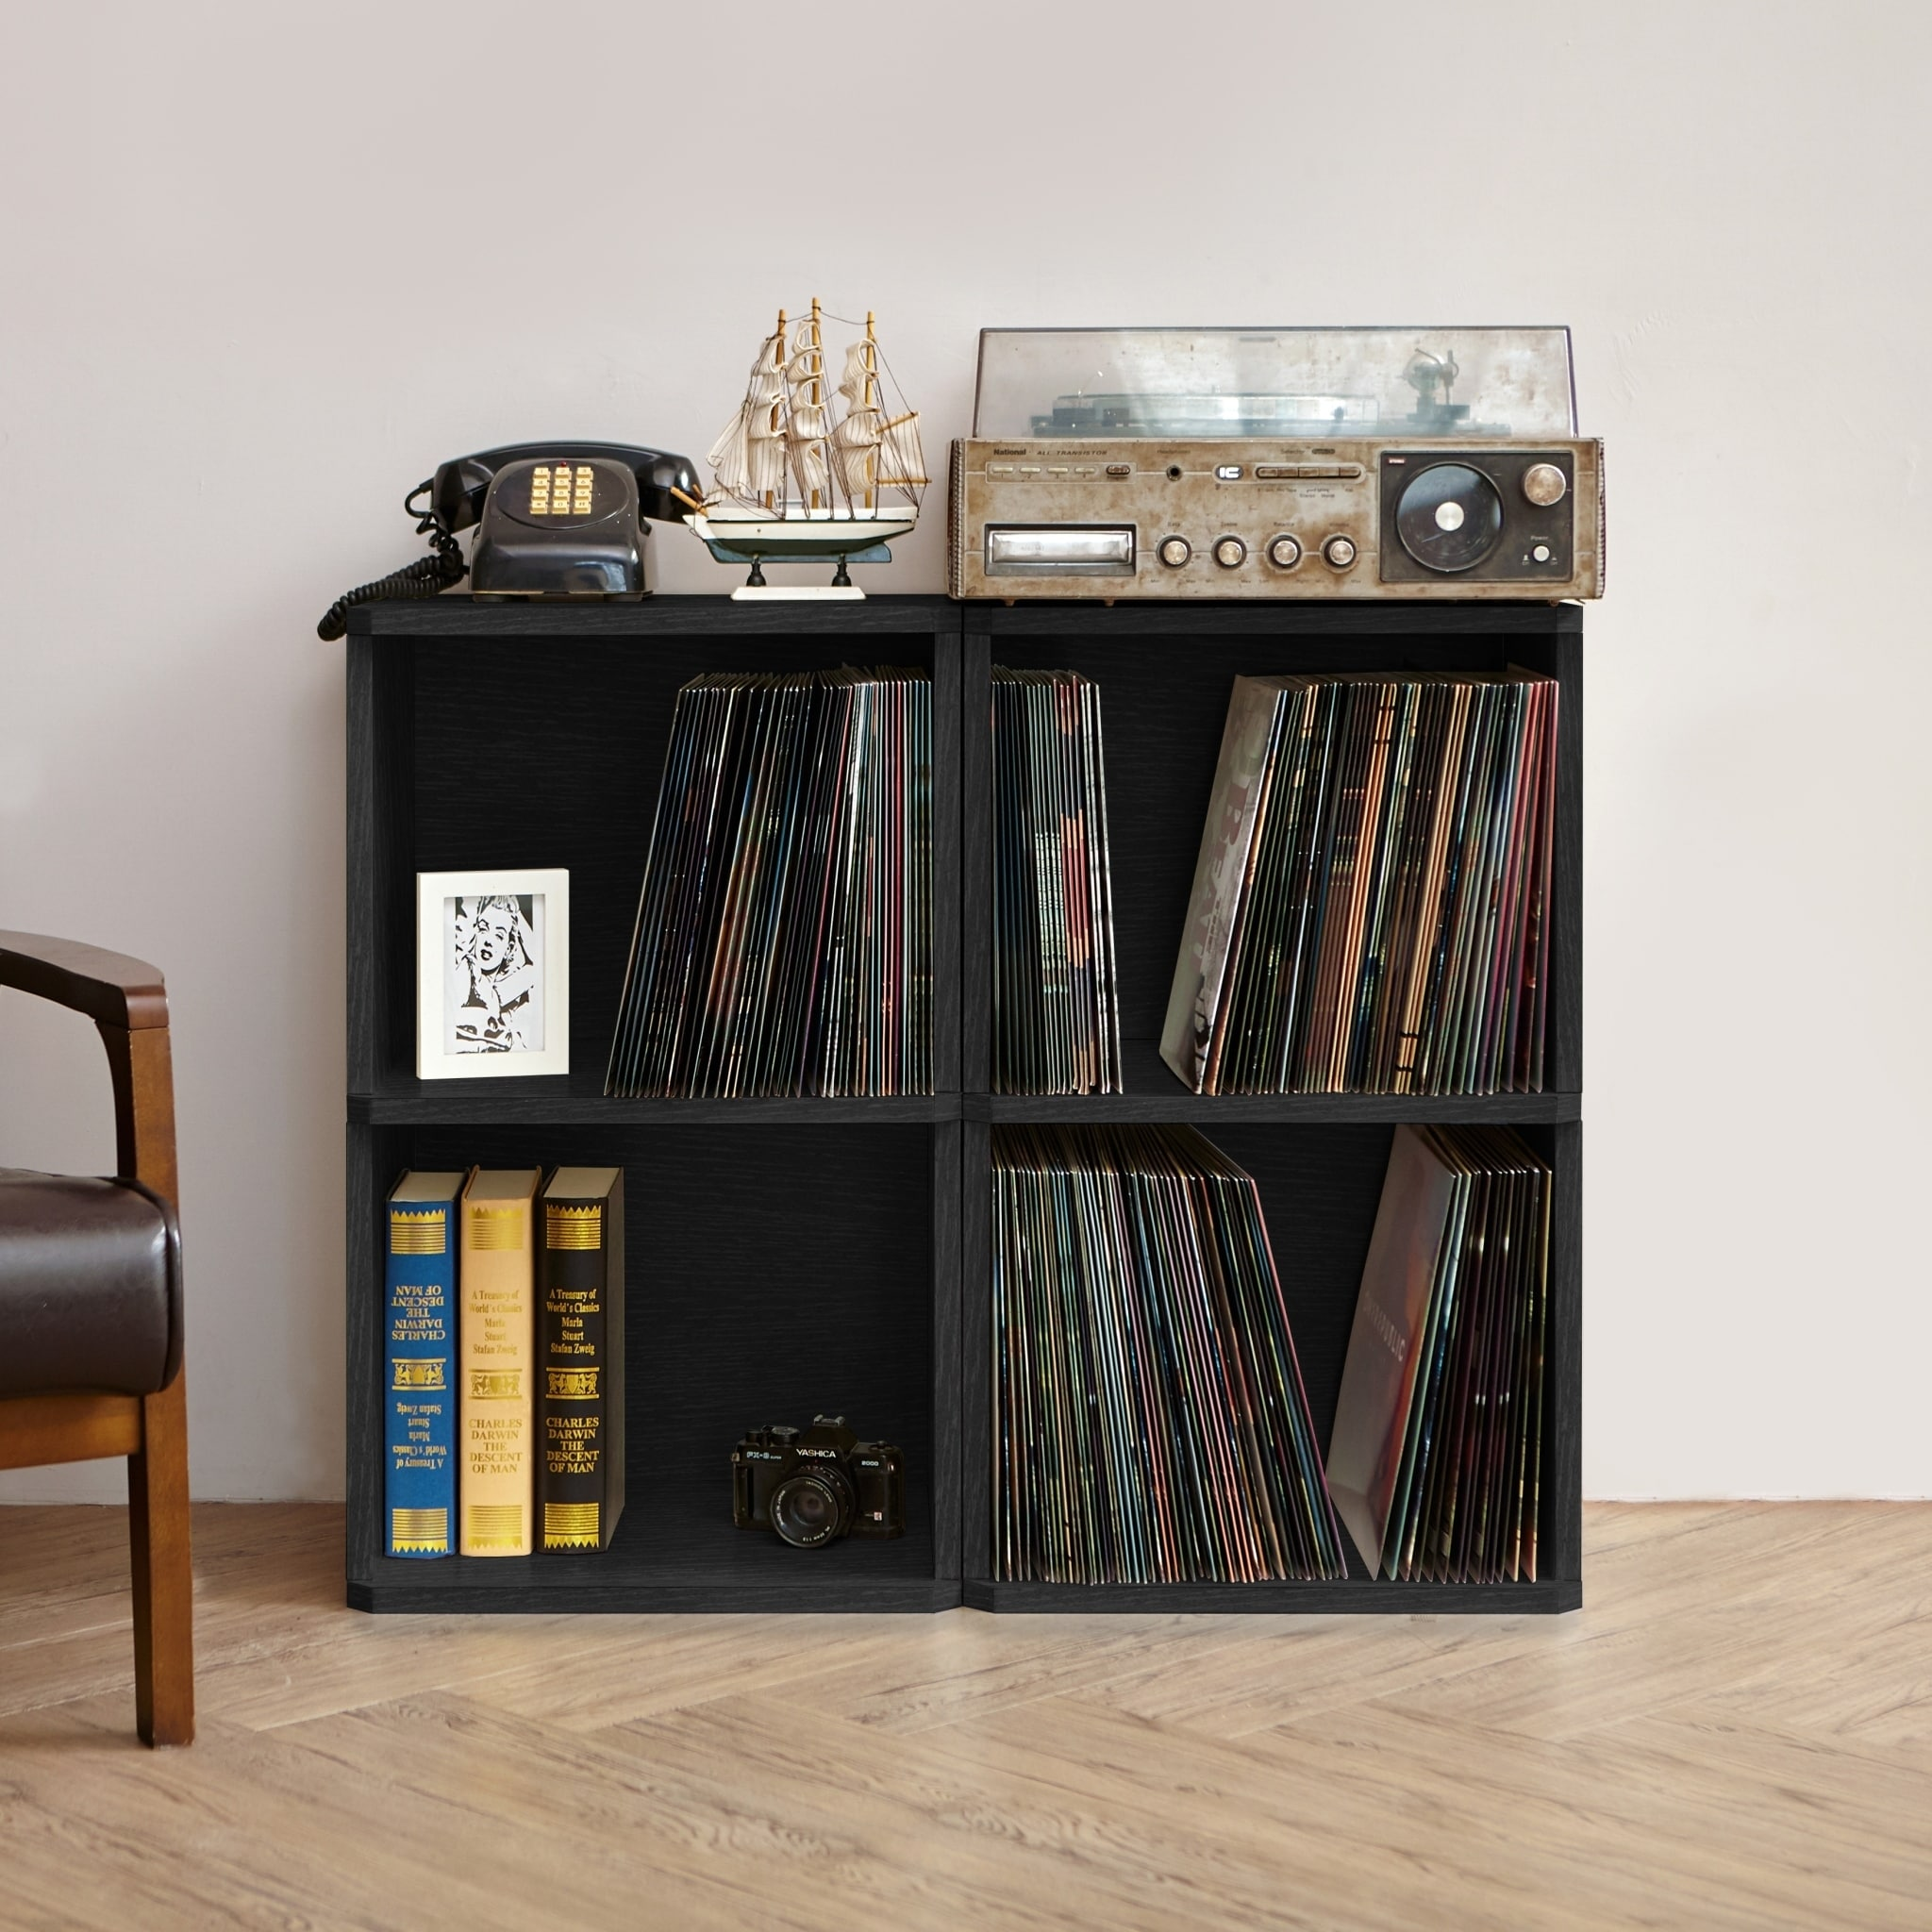 Music Latest Collection Of Eco 2-shelf Vinyl Lp Record Album Storage Cube Black Lifetime Guarantee